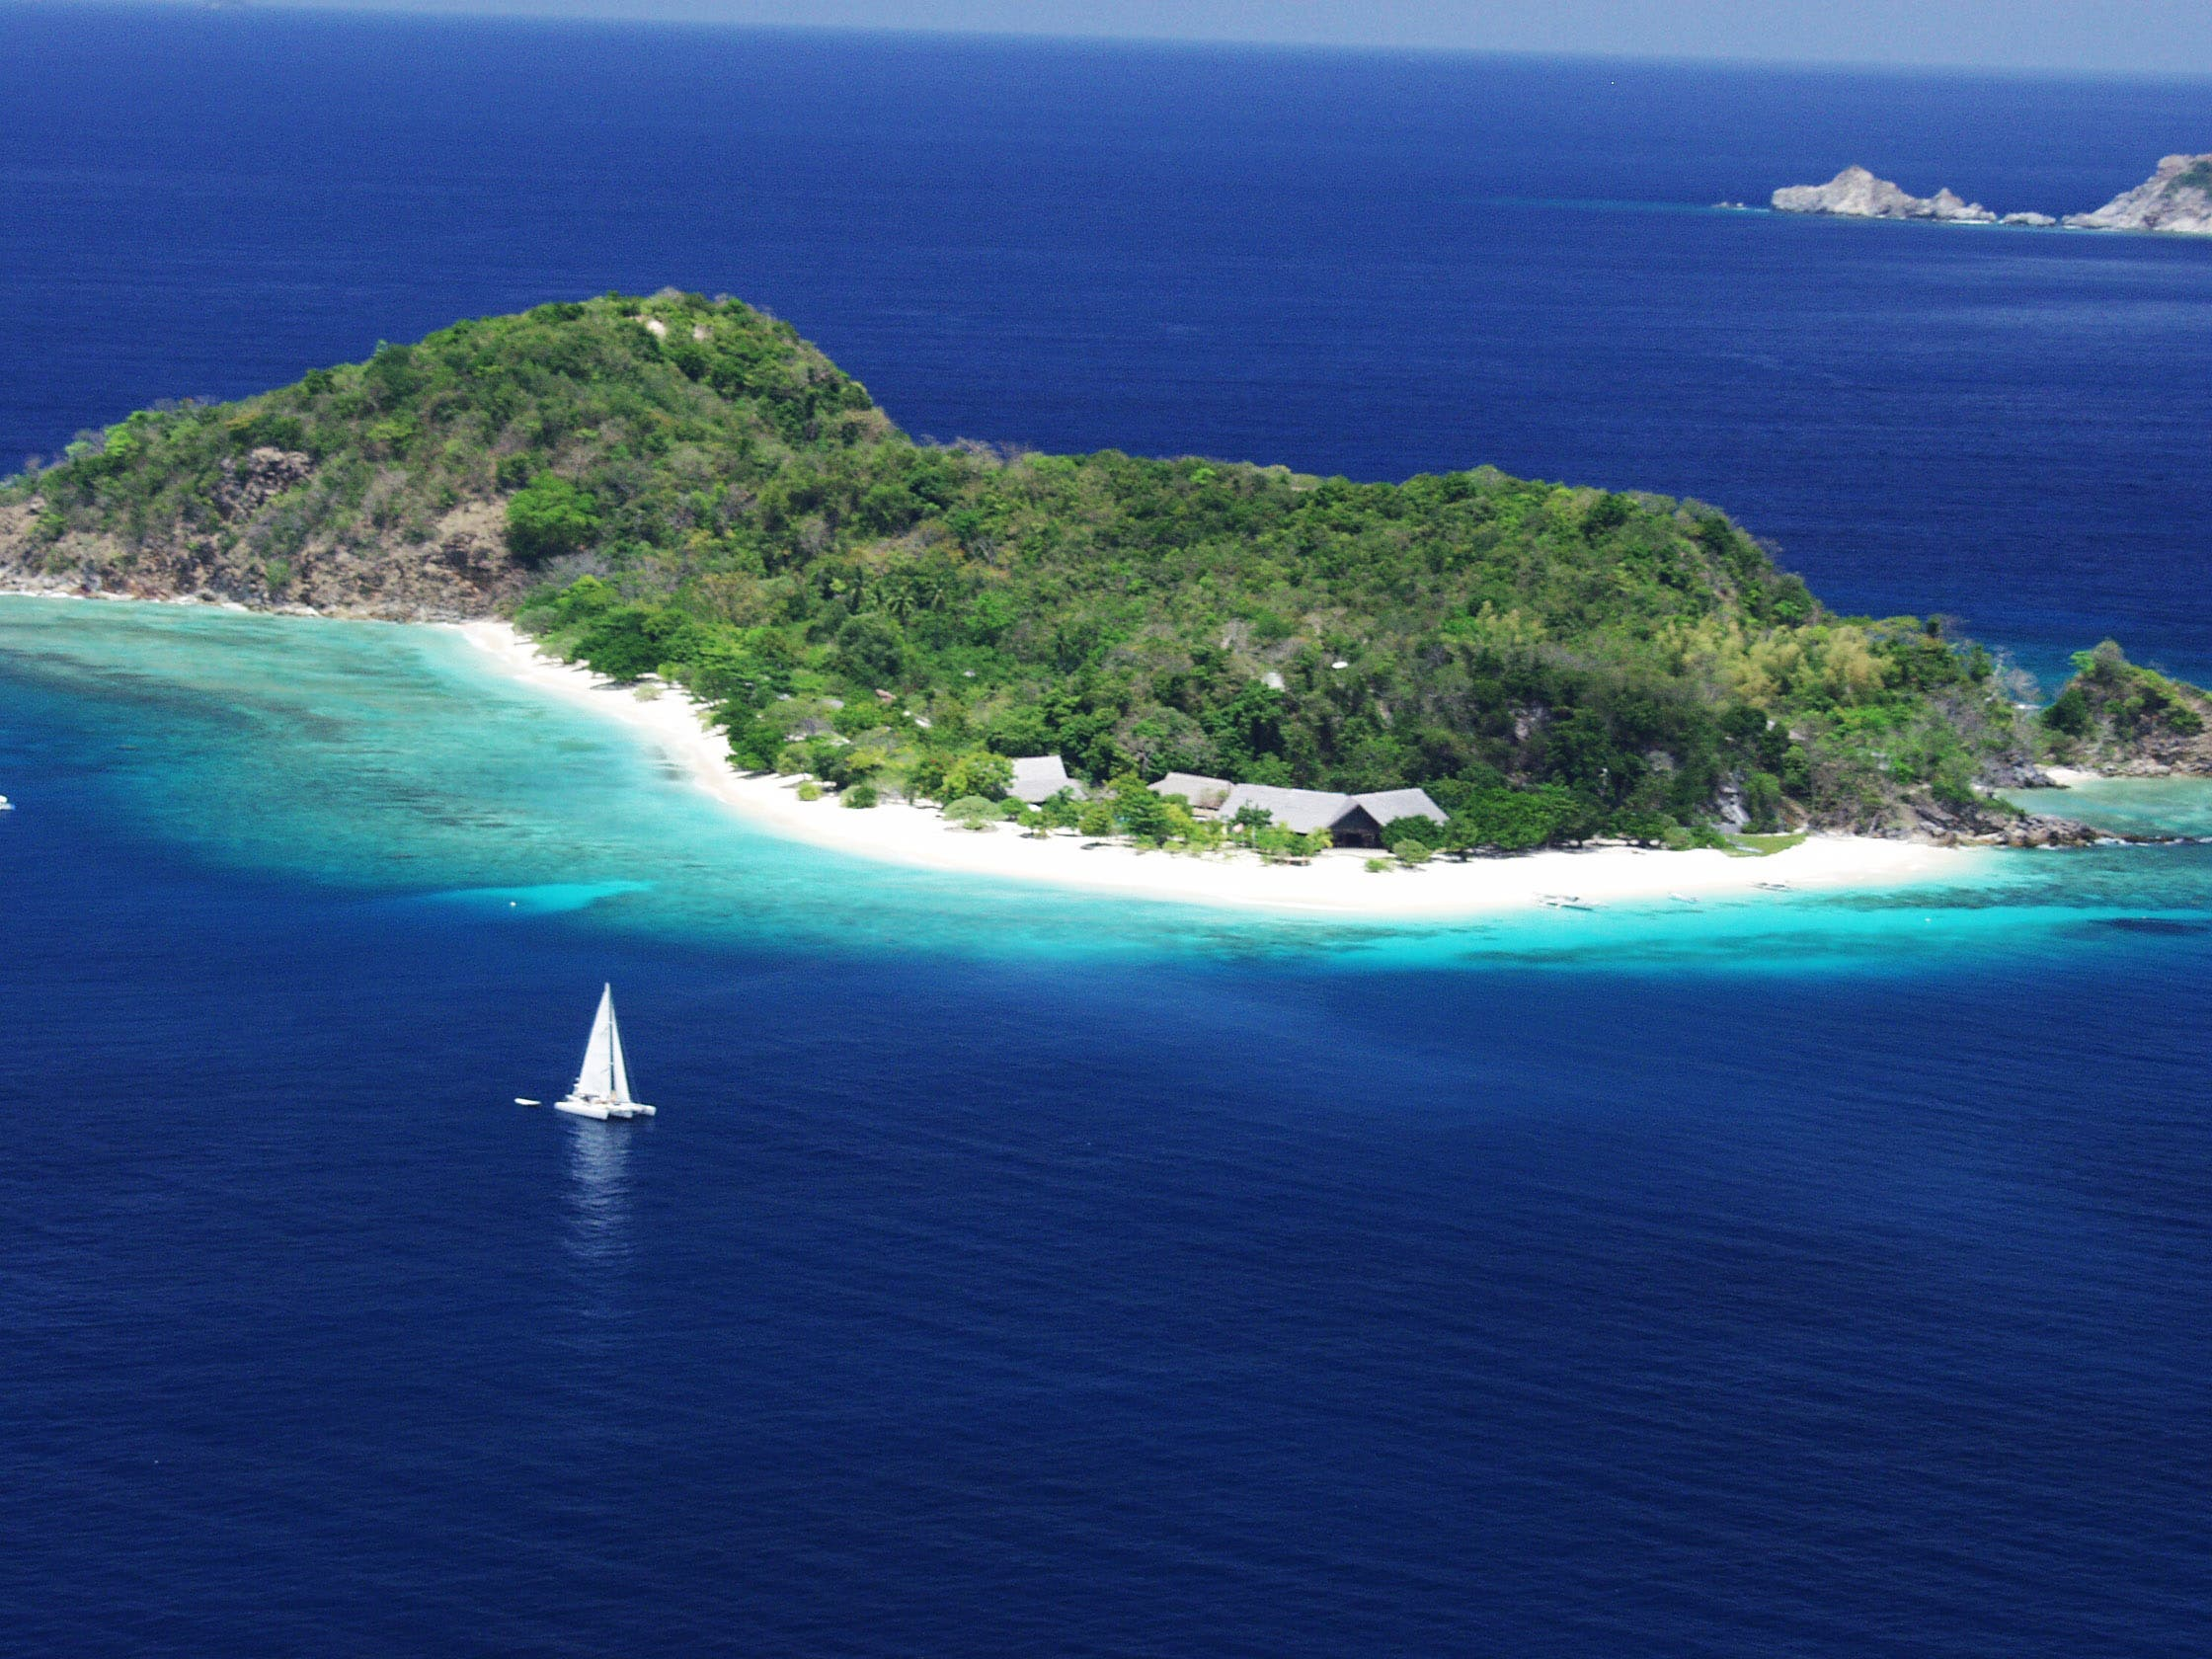 Club Paradise Getaway: Win a Relaxing Palawan Stay for 2!